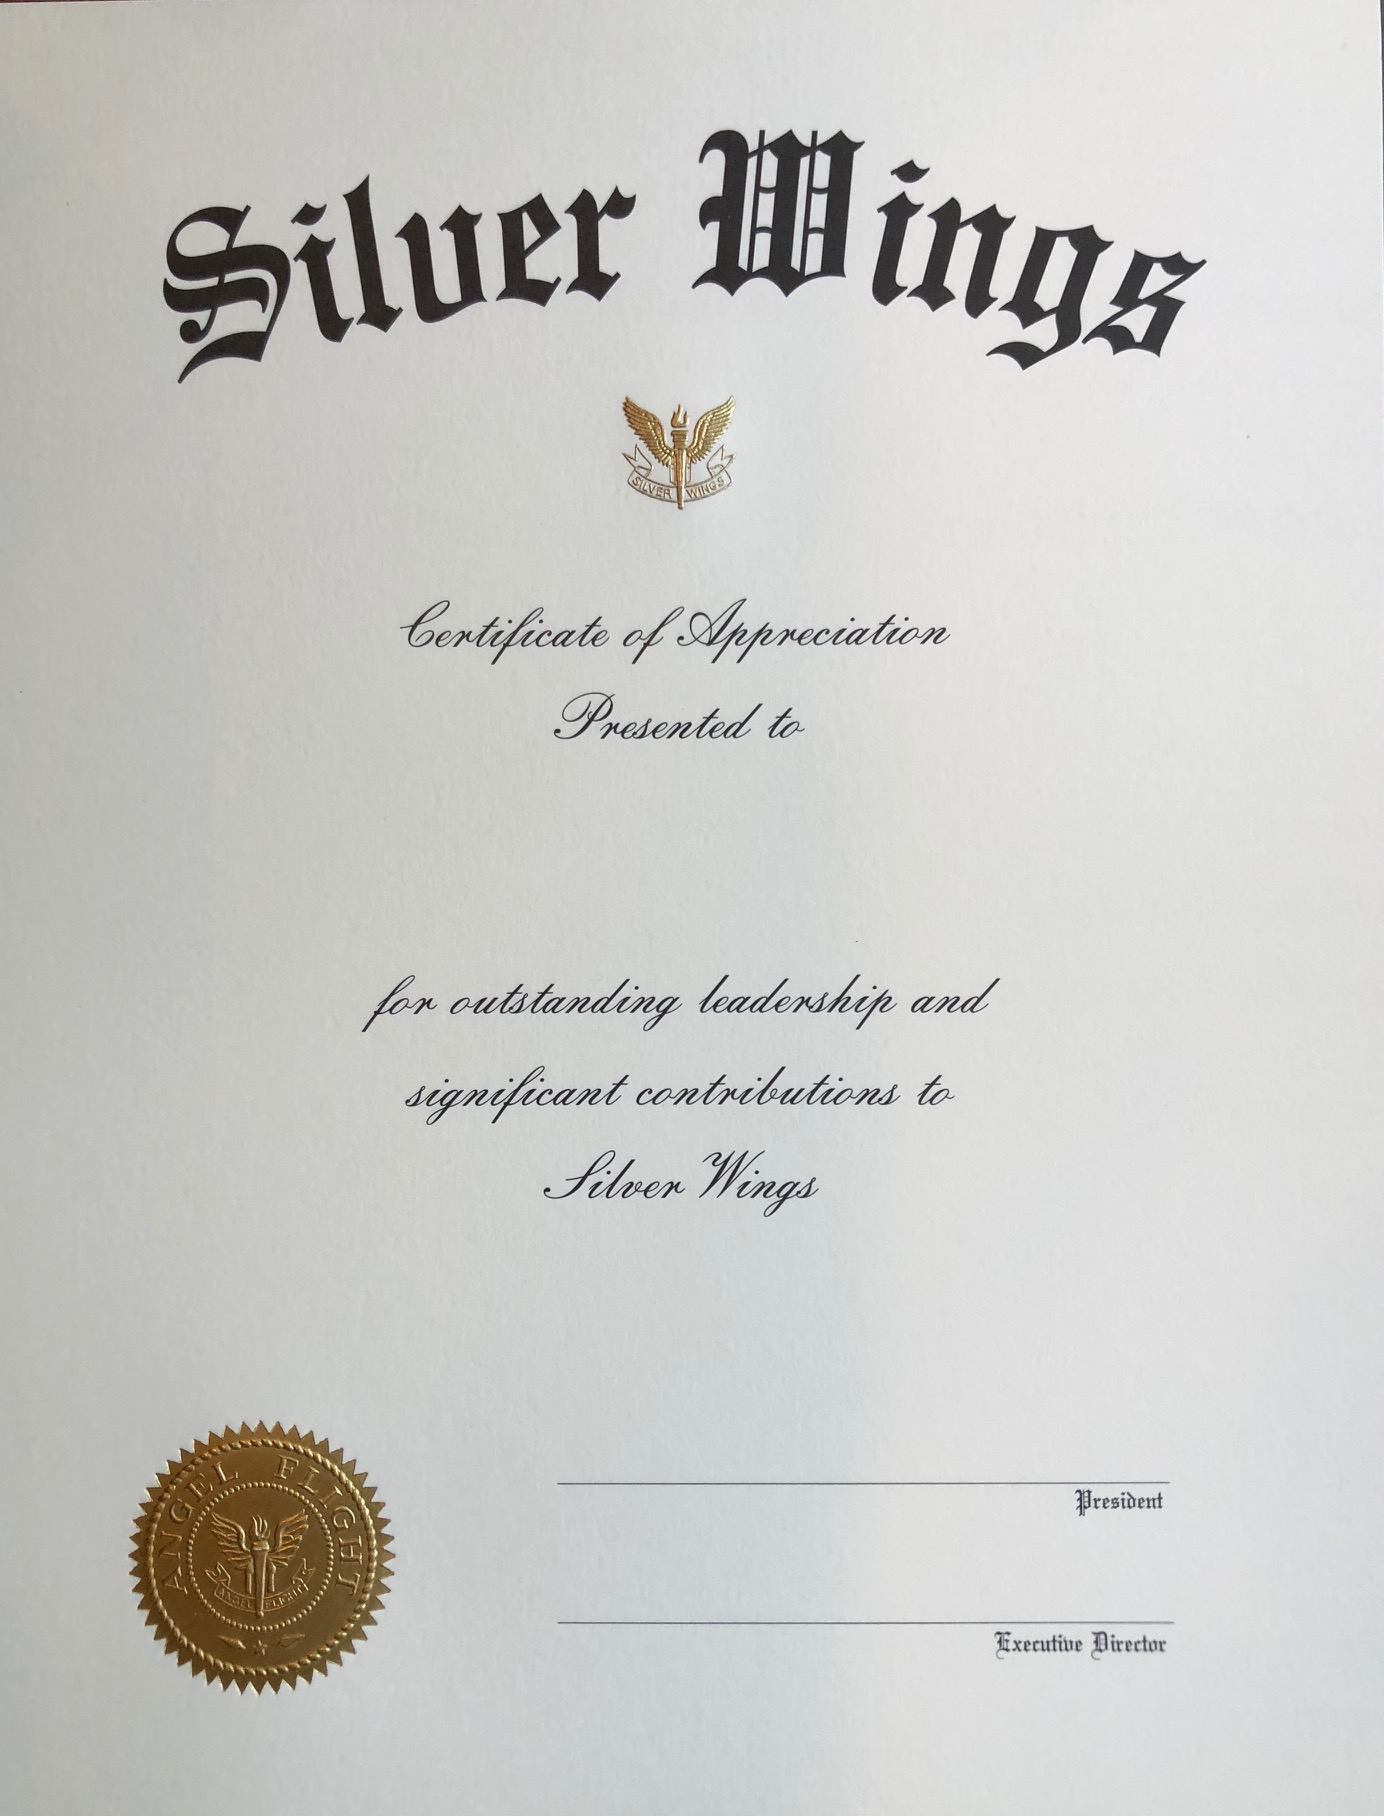 Sw Appreciation Certificate Arnold Air Society Silver Wings